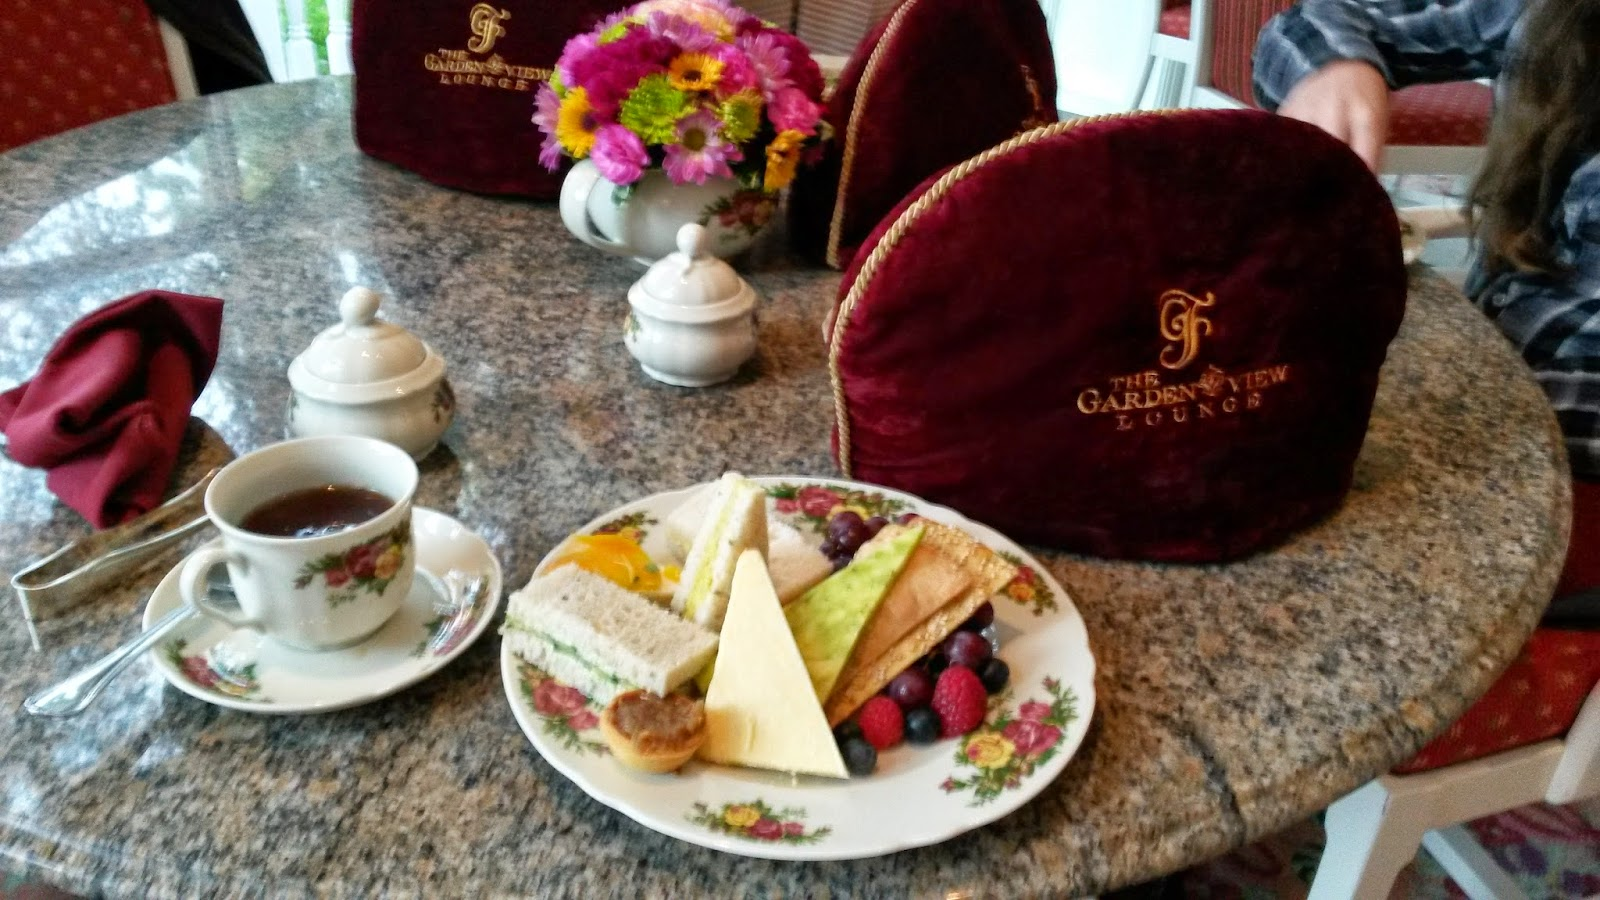 Monica 39 S Travels And Reviews Afternoon Tea At Garden View Tea Room